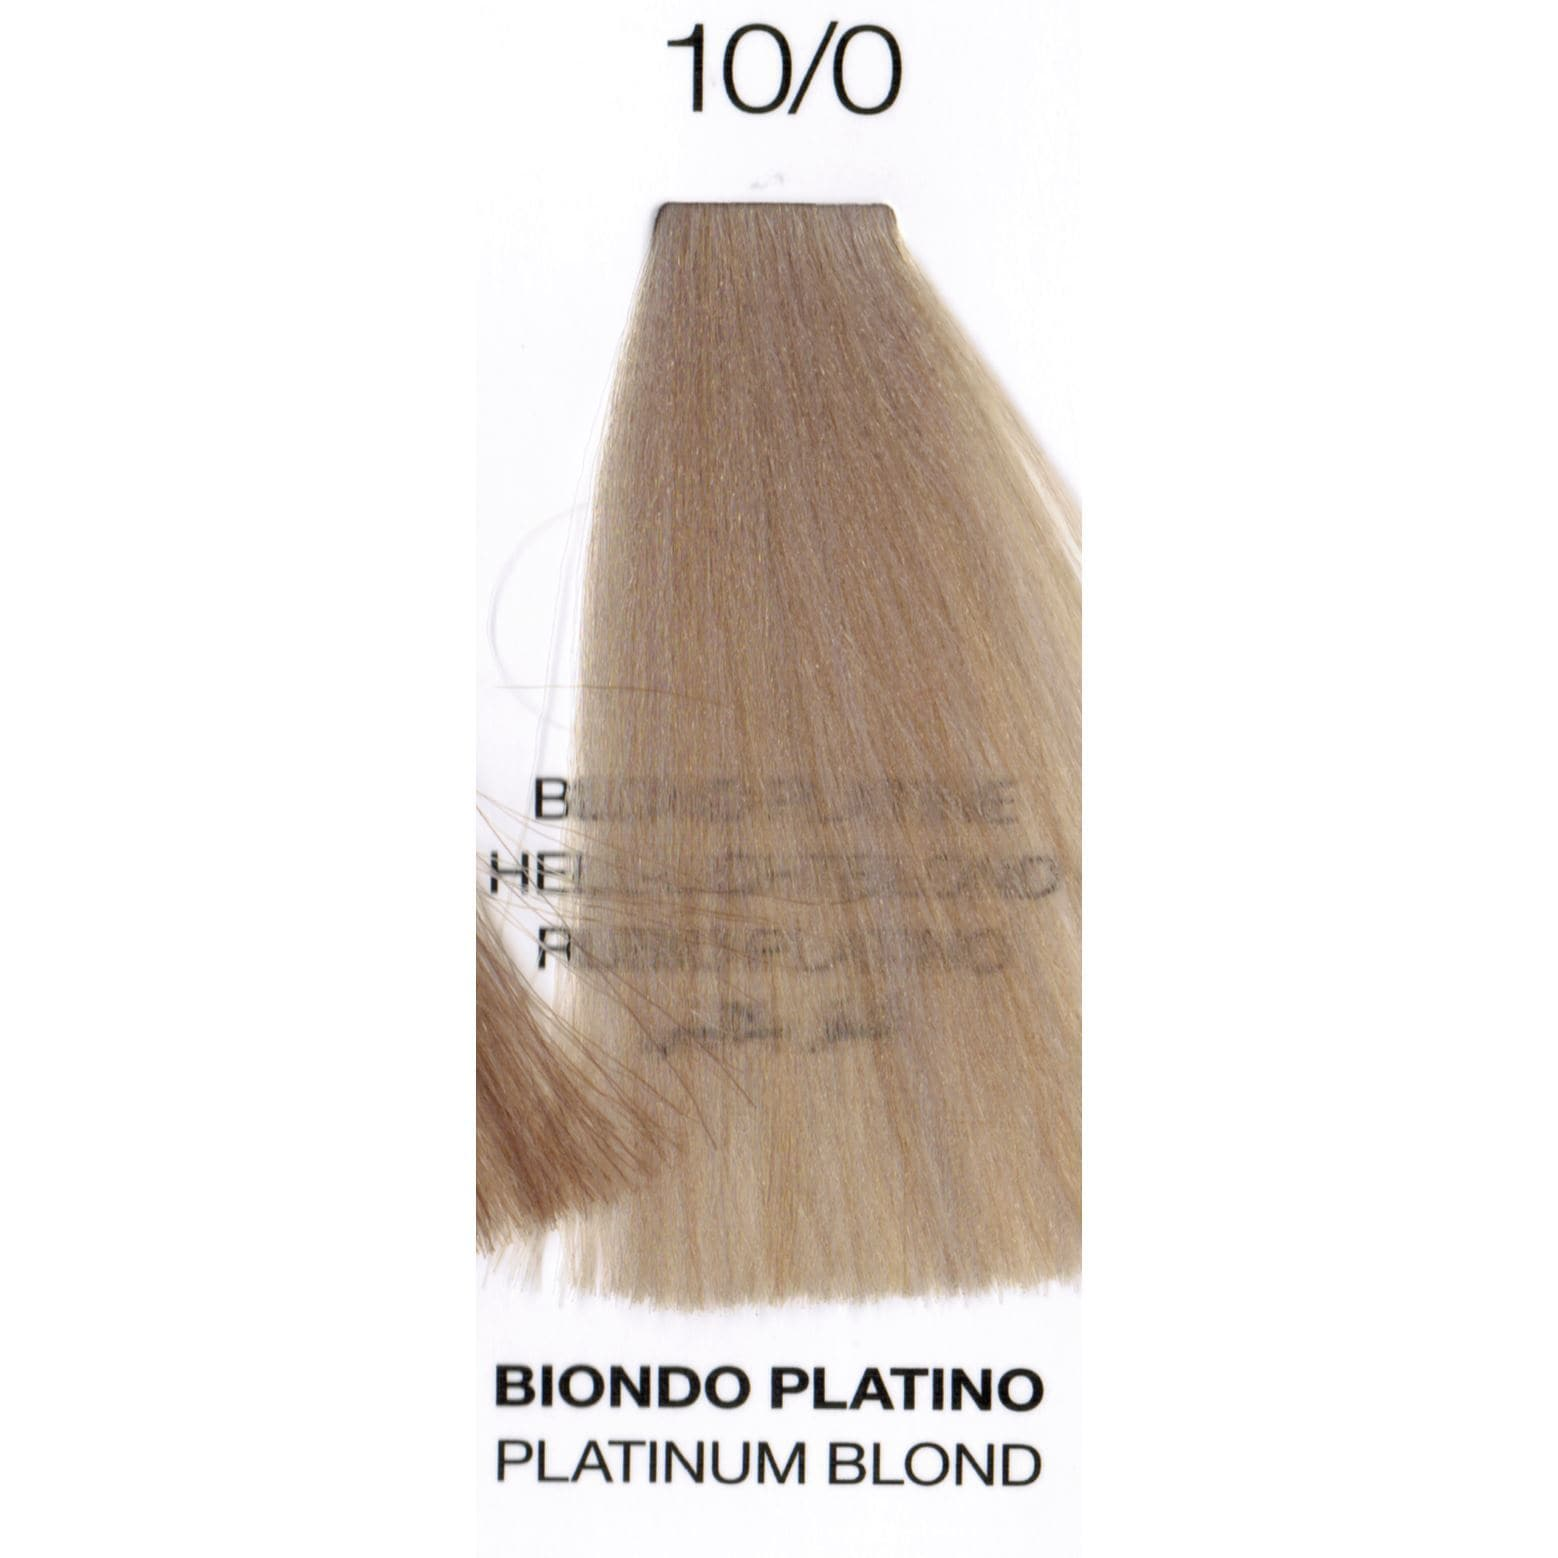 10/0 Platinum Blonde | Purity | Ammonia-Free Permanent Hair Color | OYSTER | SHSalons.com